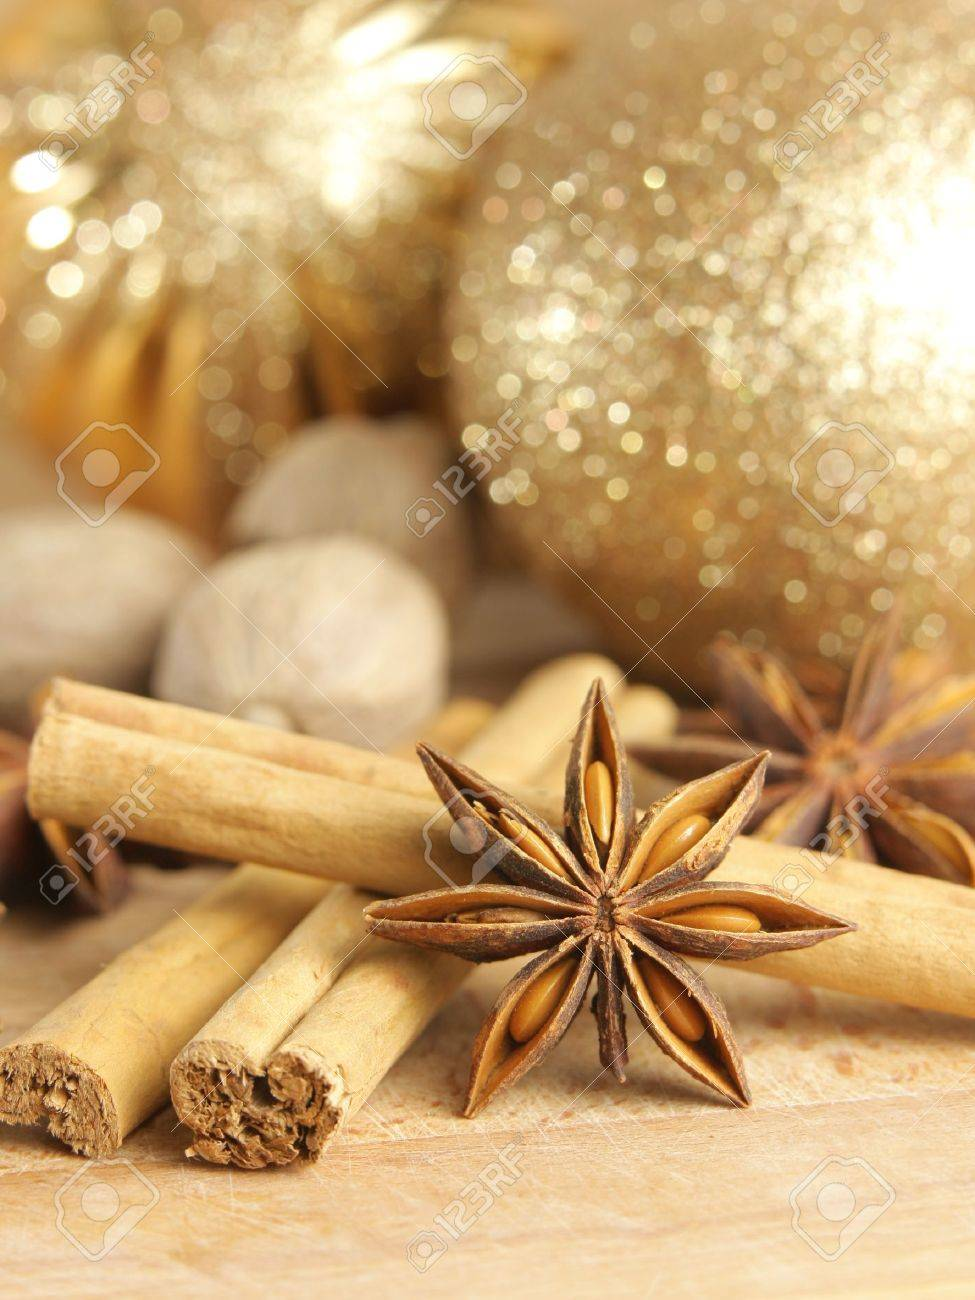 Christmas spices and baubles on wooden board Stock Photo - 11118730